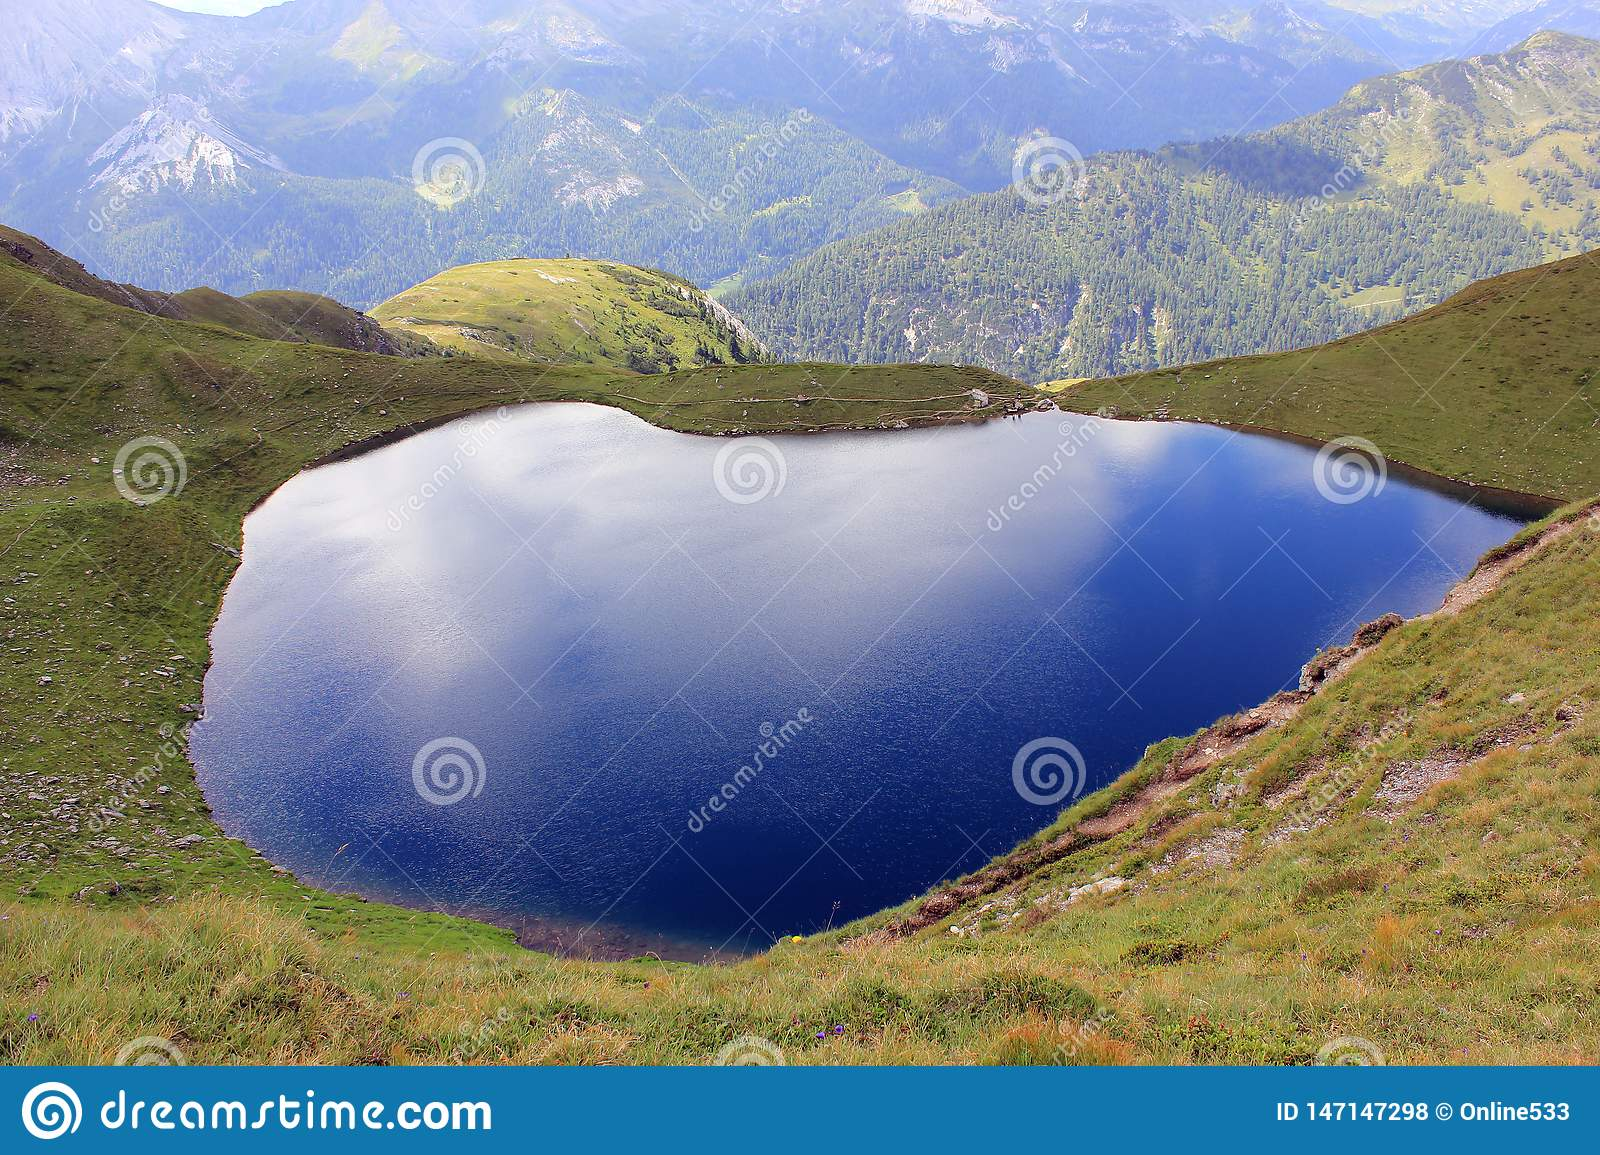 Picturesque blue glassy lake in the mountains